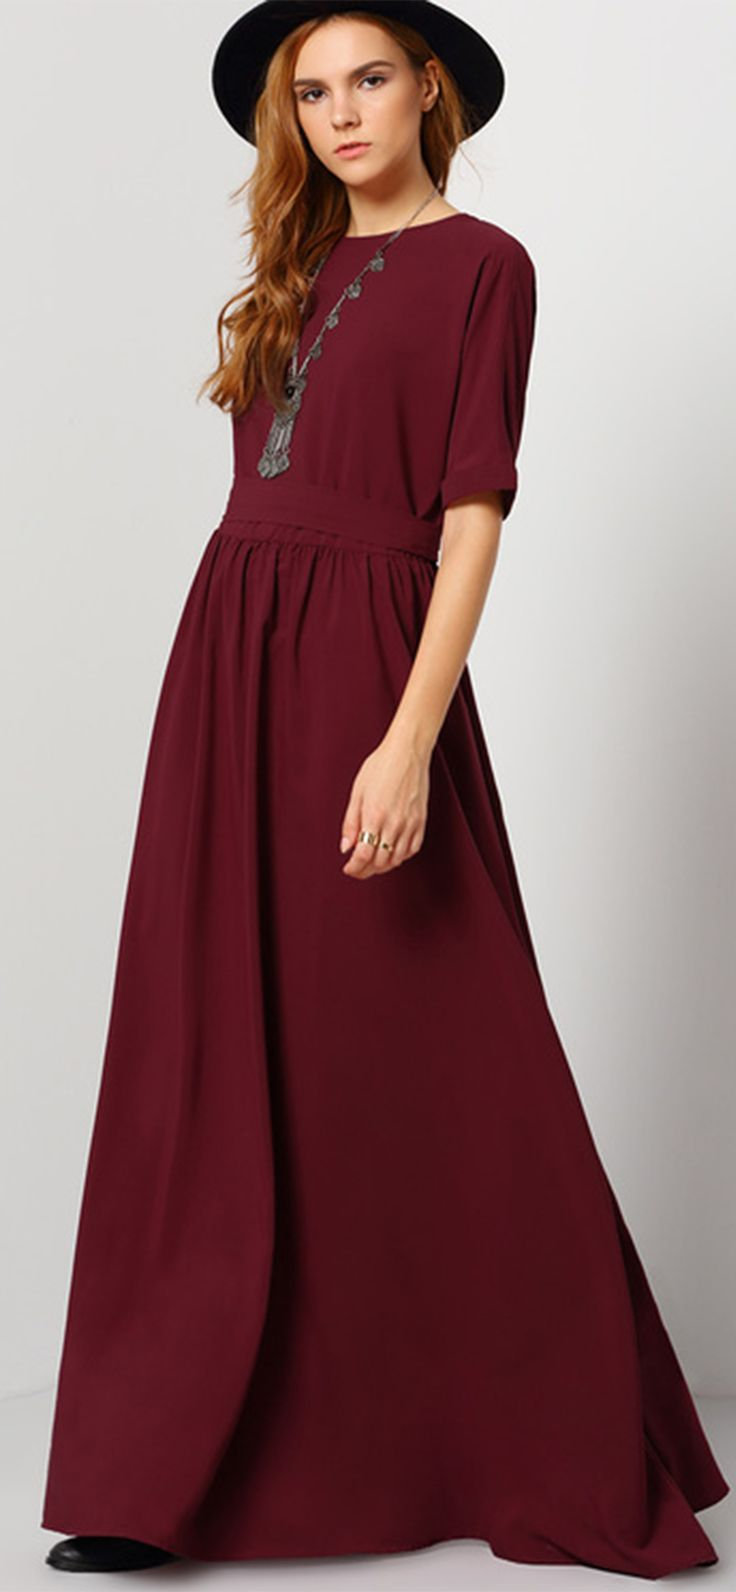 Slip into a volume of sophistication with this burgundy maxi dress. A classic round neck and folded elbow length sleeves is crafted on its upper bodice, which is then cinched with a runched waistline. Finishing is design is its flowy and full bias skirt.